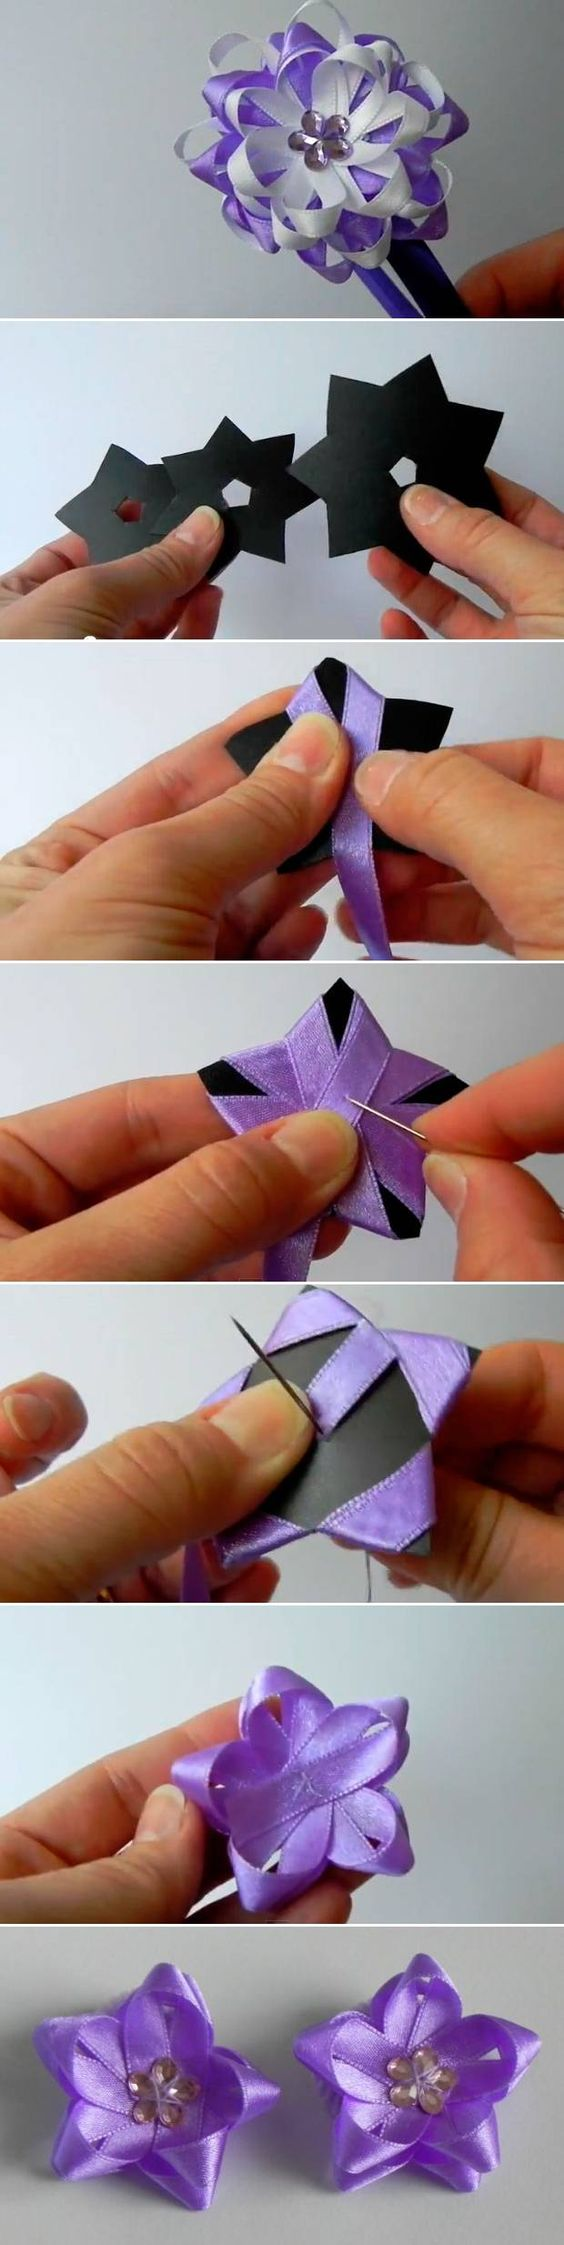 DIY Quick Flower Bow DIY Projects | UsefulDIY.com: